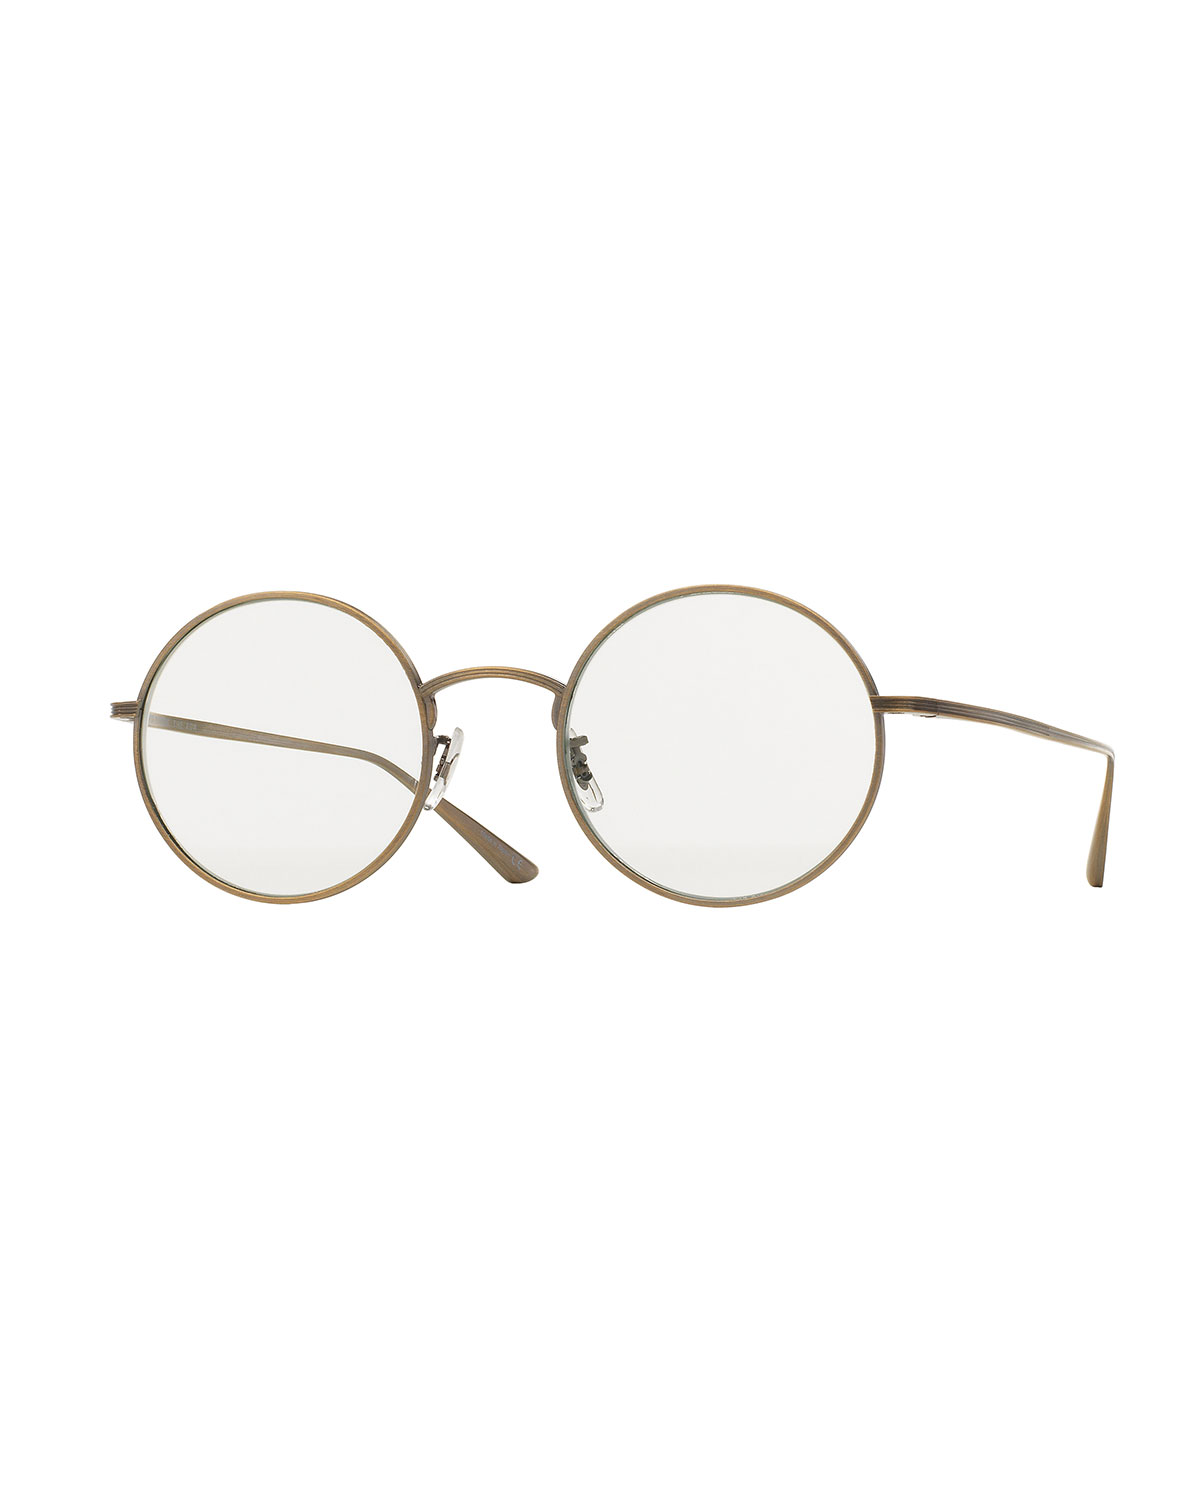 8b1e4126378bc Oliver Peoples The Row After Midnight Round Sunglasses